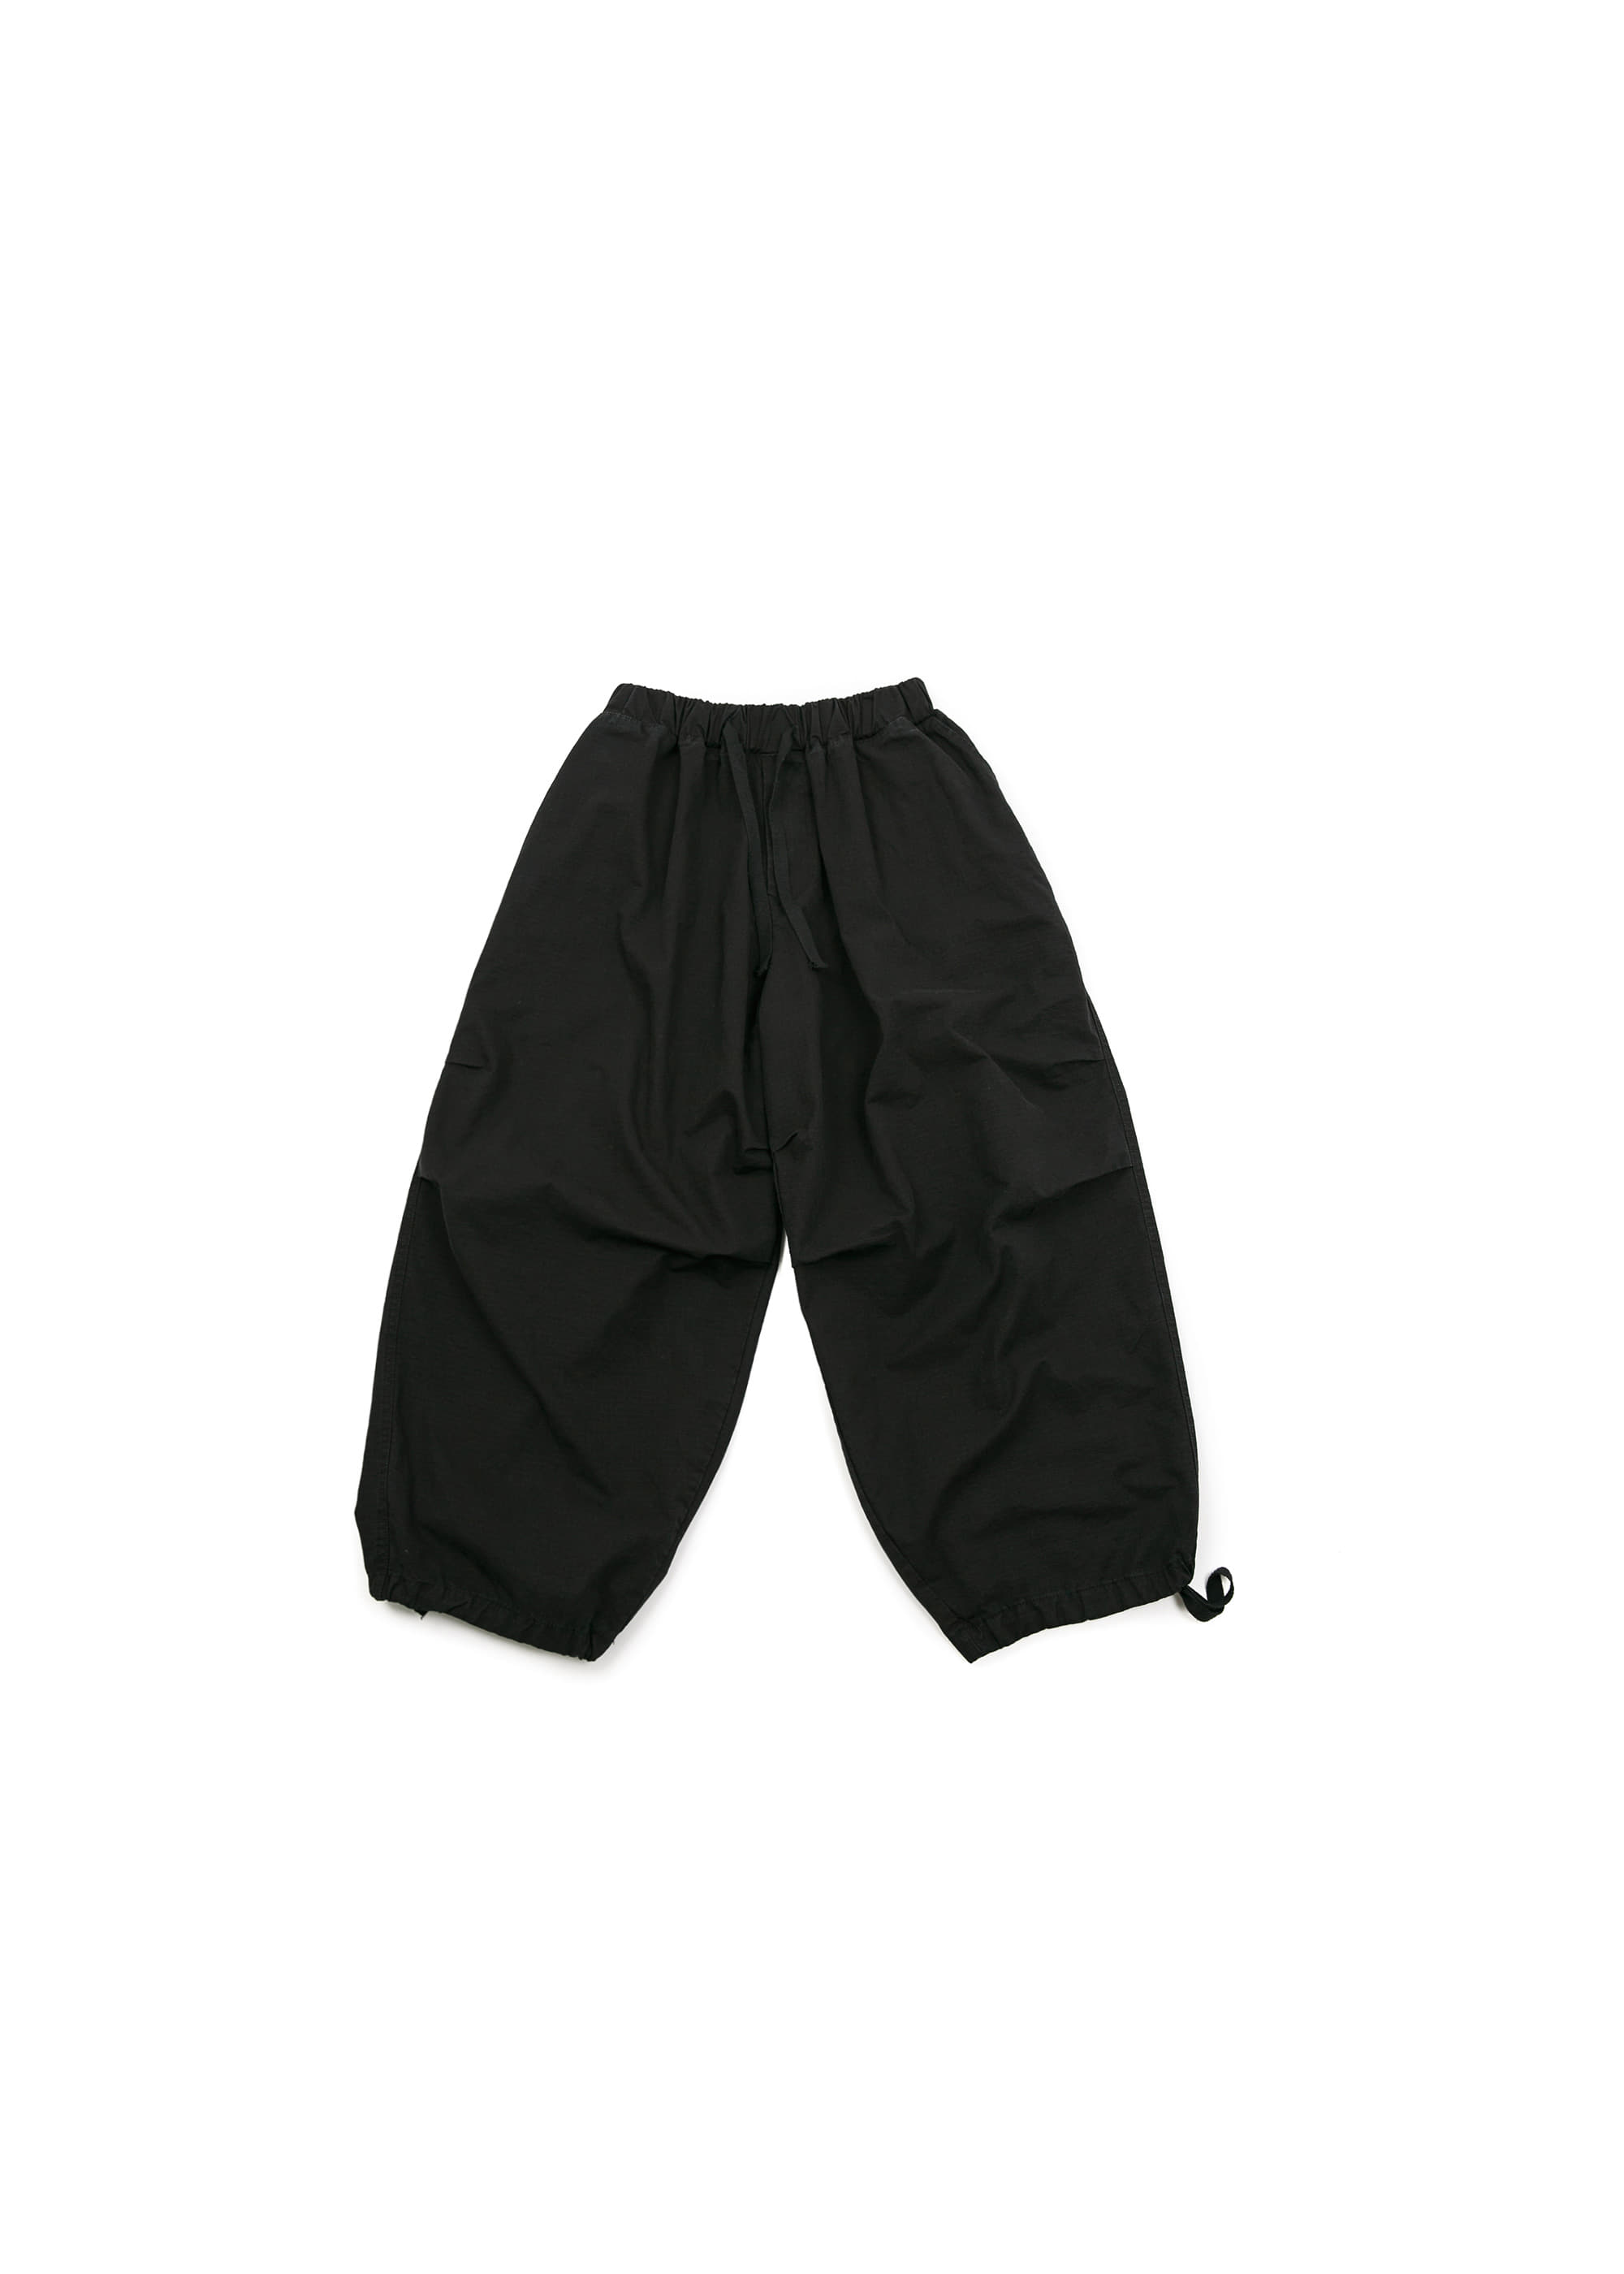 Rib Army Balloon Pants - Black [ RE ]